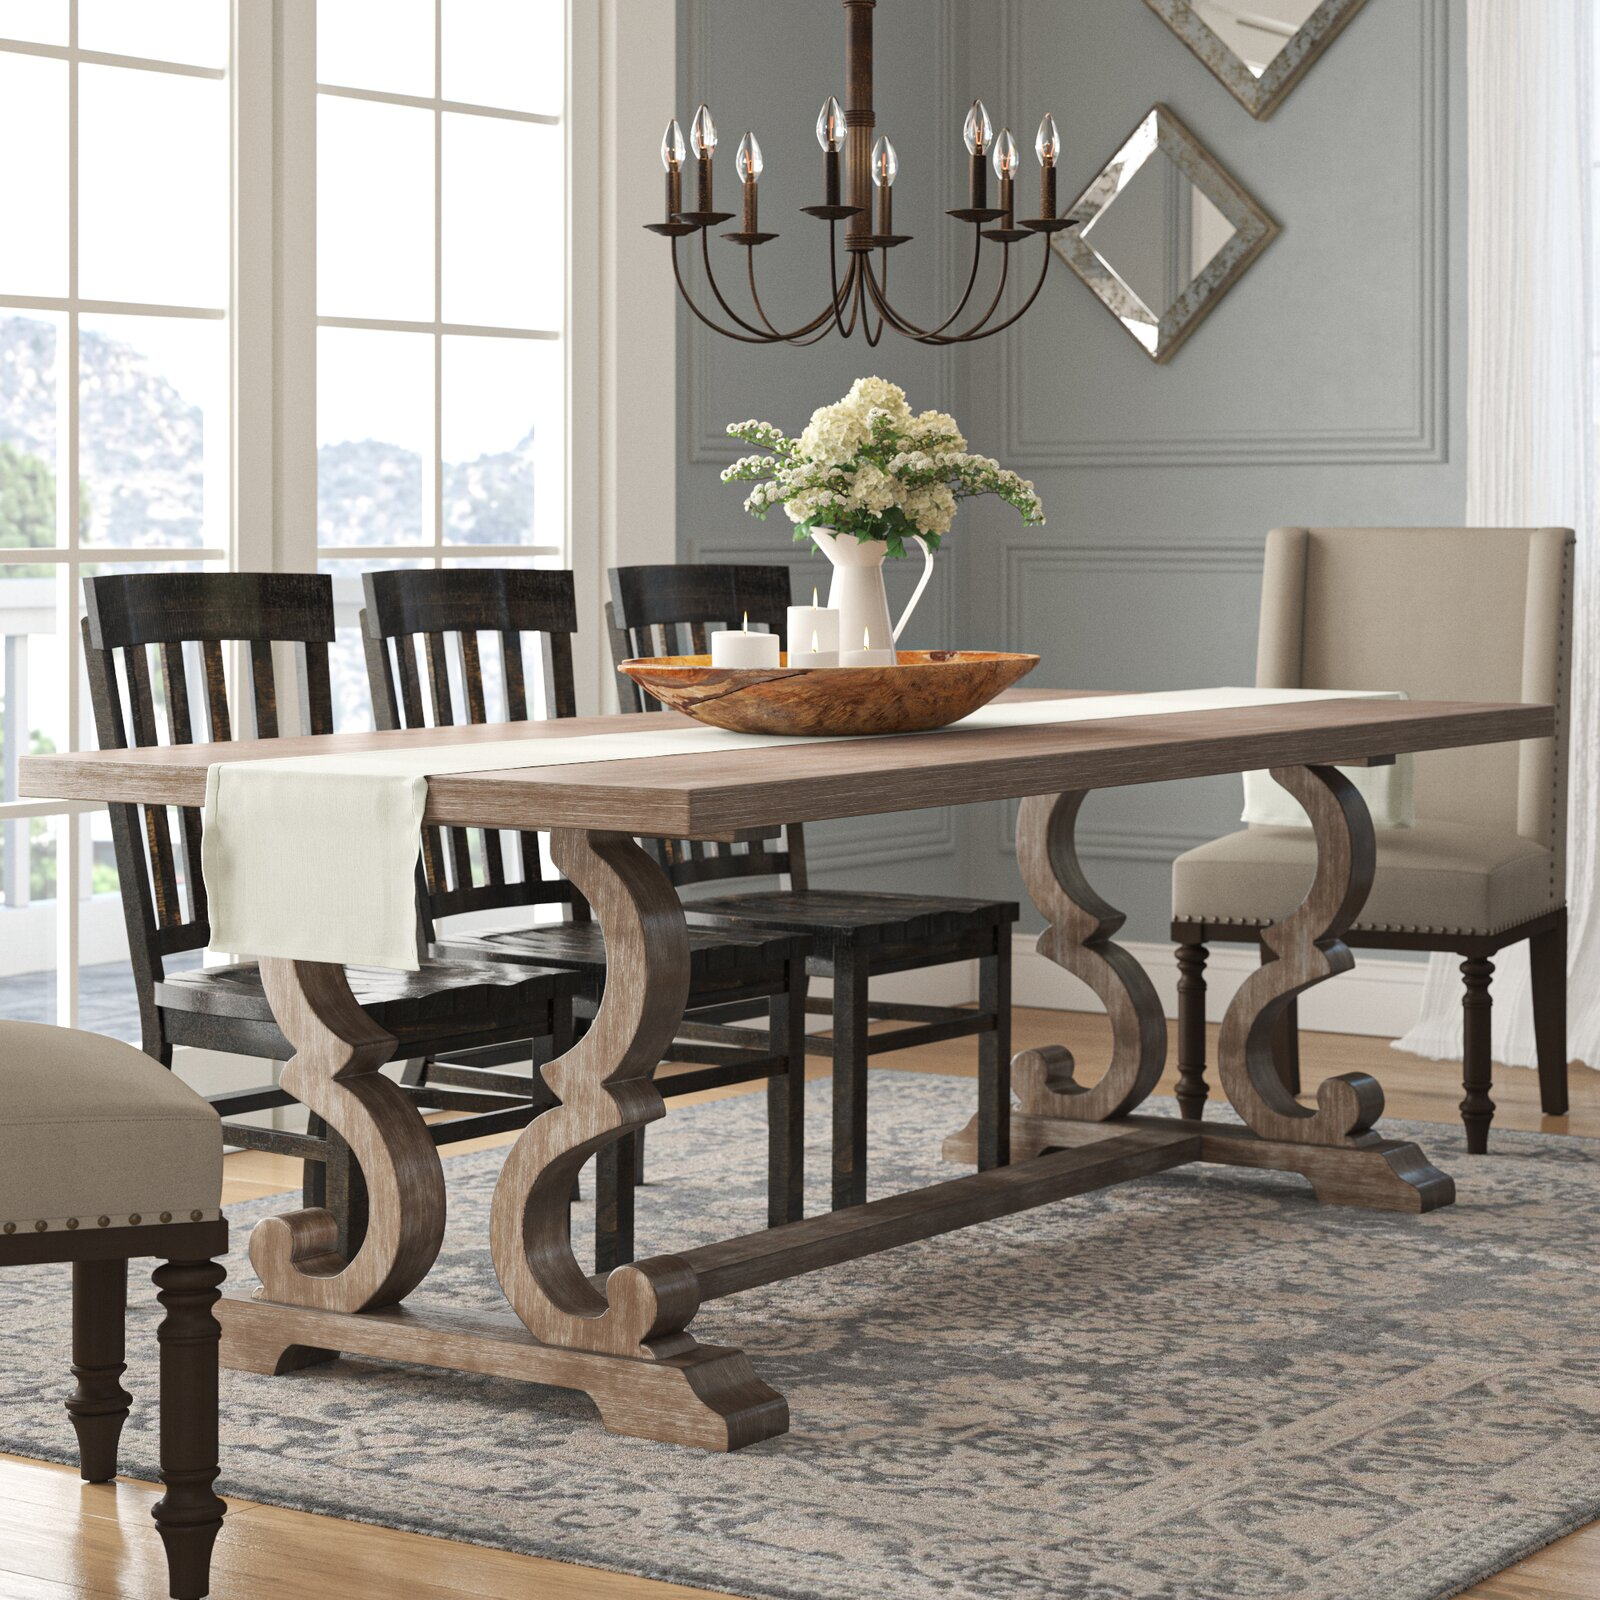 beautiful-farmhouse-wood-dining-table-elegant-decorative-trestle-base-expandable-leaf-90-inch-tabletop-dining-furniture-for-large-families